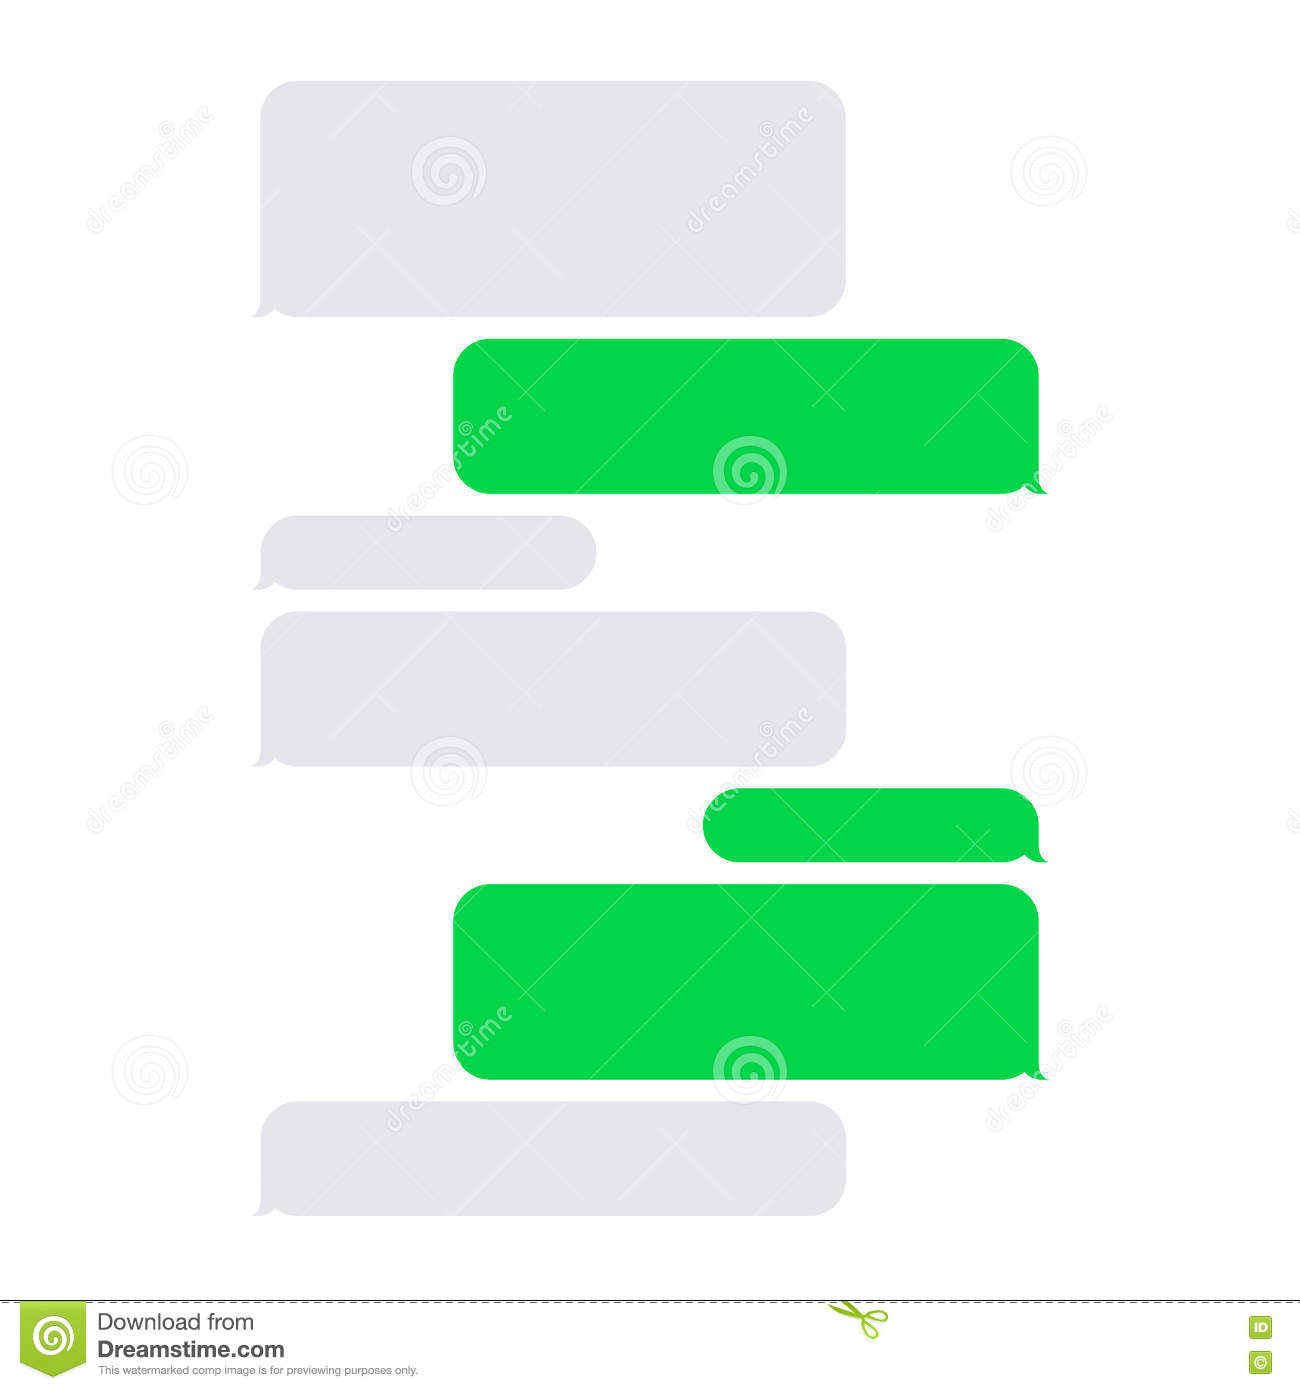 Images of Blank Text Conversation - #rock-cafe